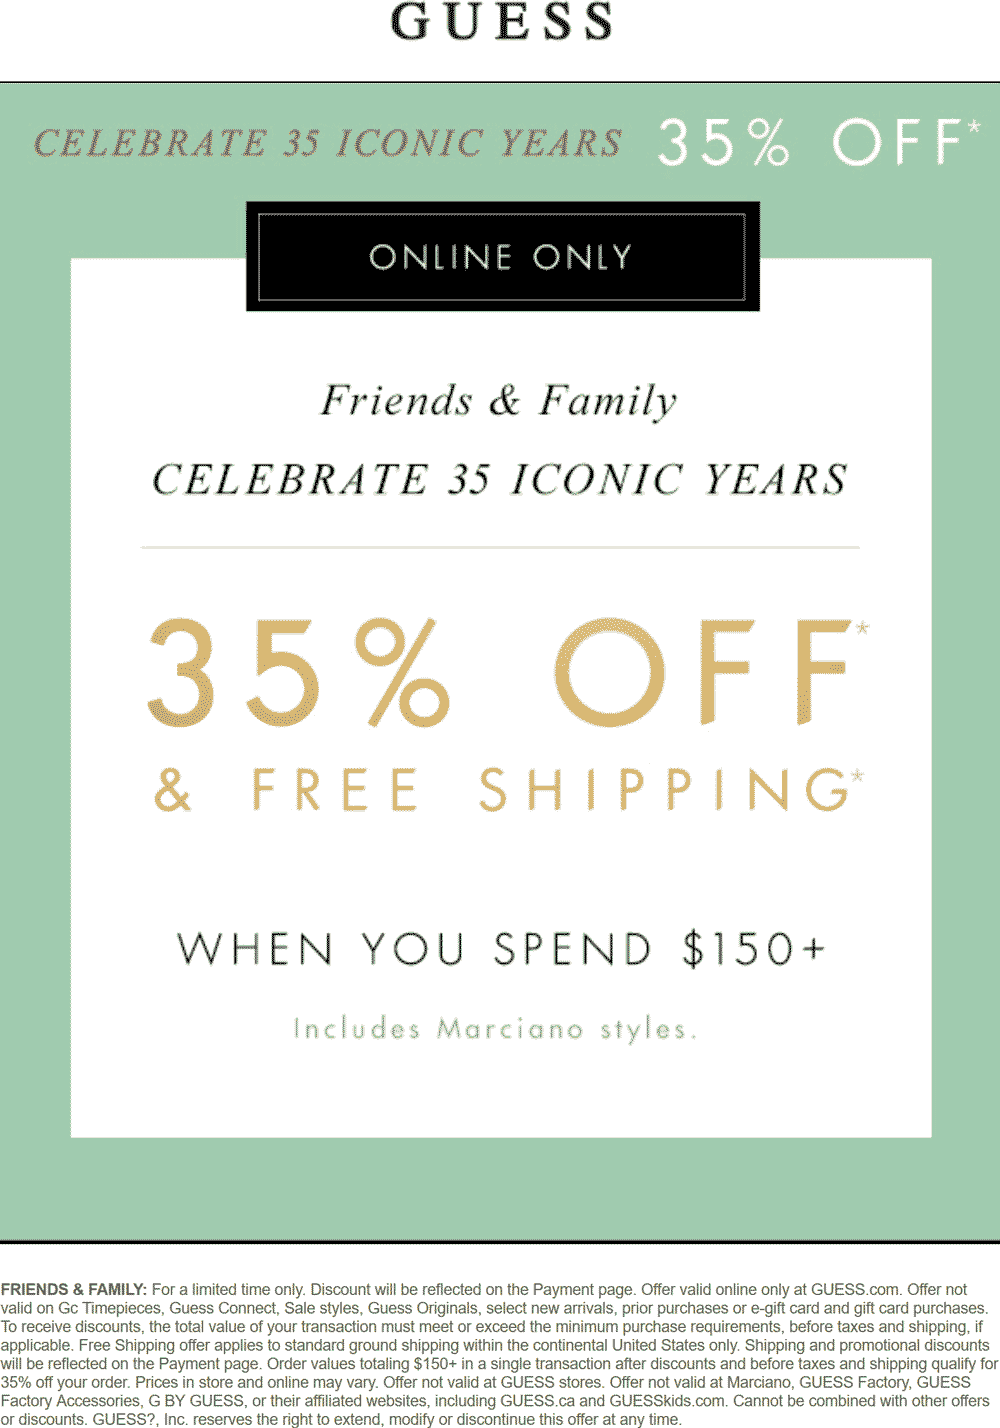 Guess.com Promo Coupon 35% off online at GUESS, no code needed